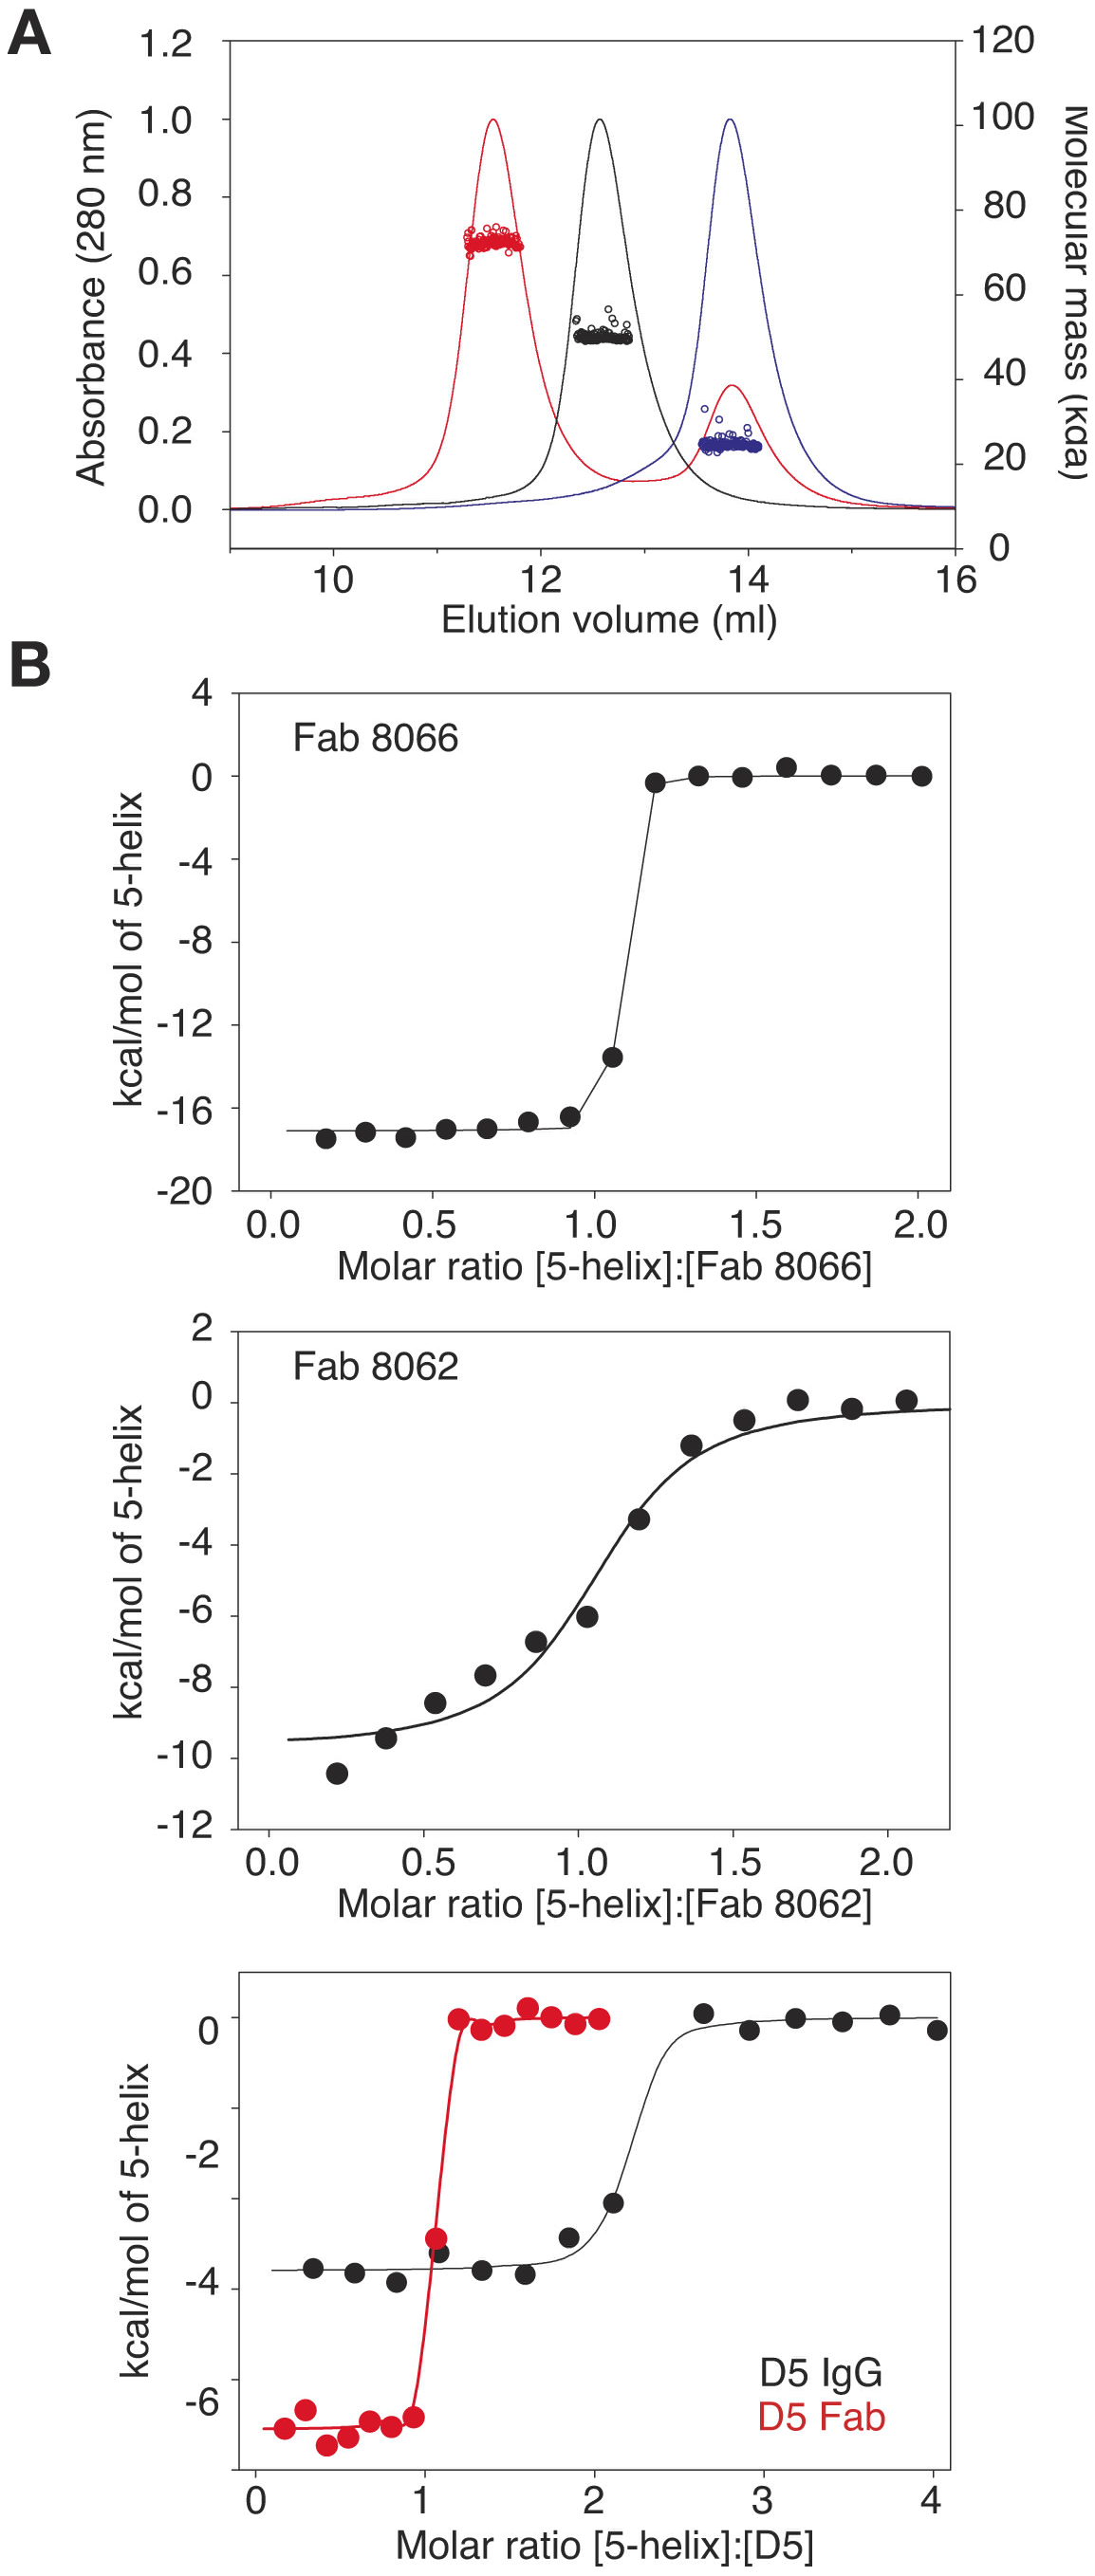 Characterization of the interaction of Fab 8066, Fab 8062 and the D5 antibody with 5-Helix.